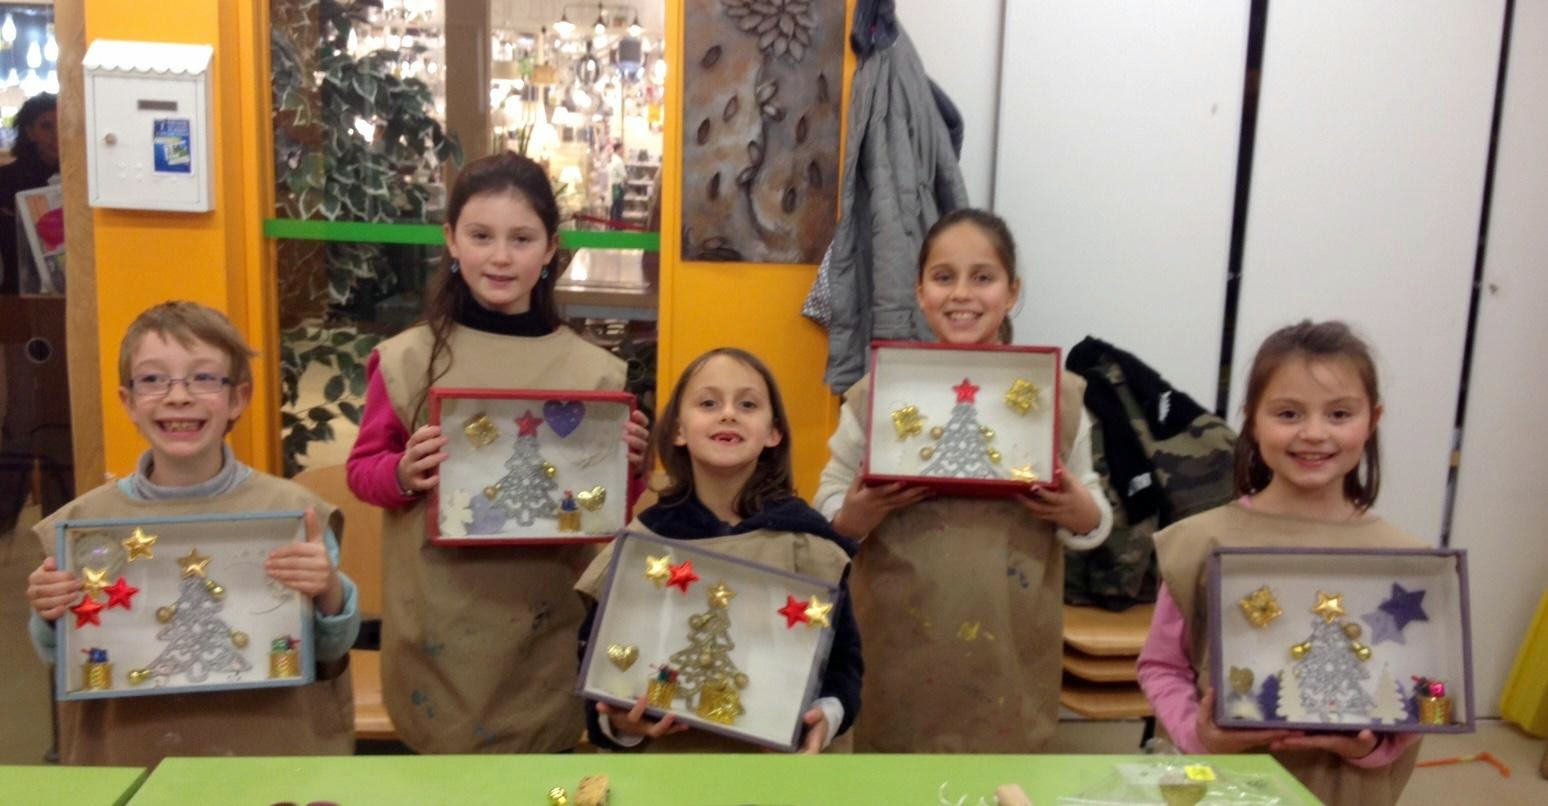 Cours enfants leroy merlin bourges cr ation no l bricolage enfants - Le roy merlin bourges ...